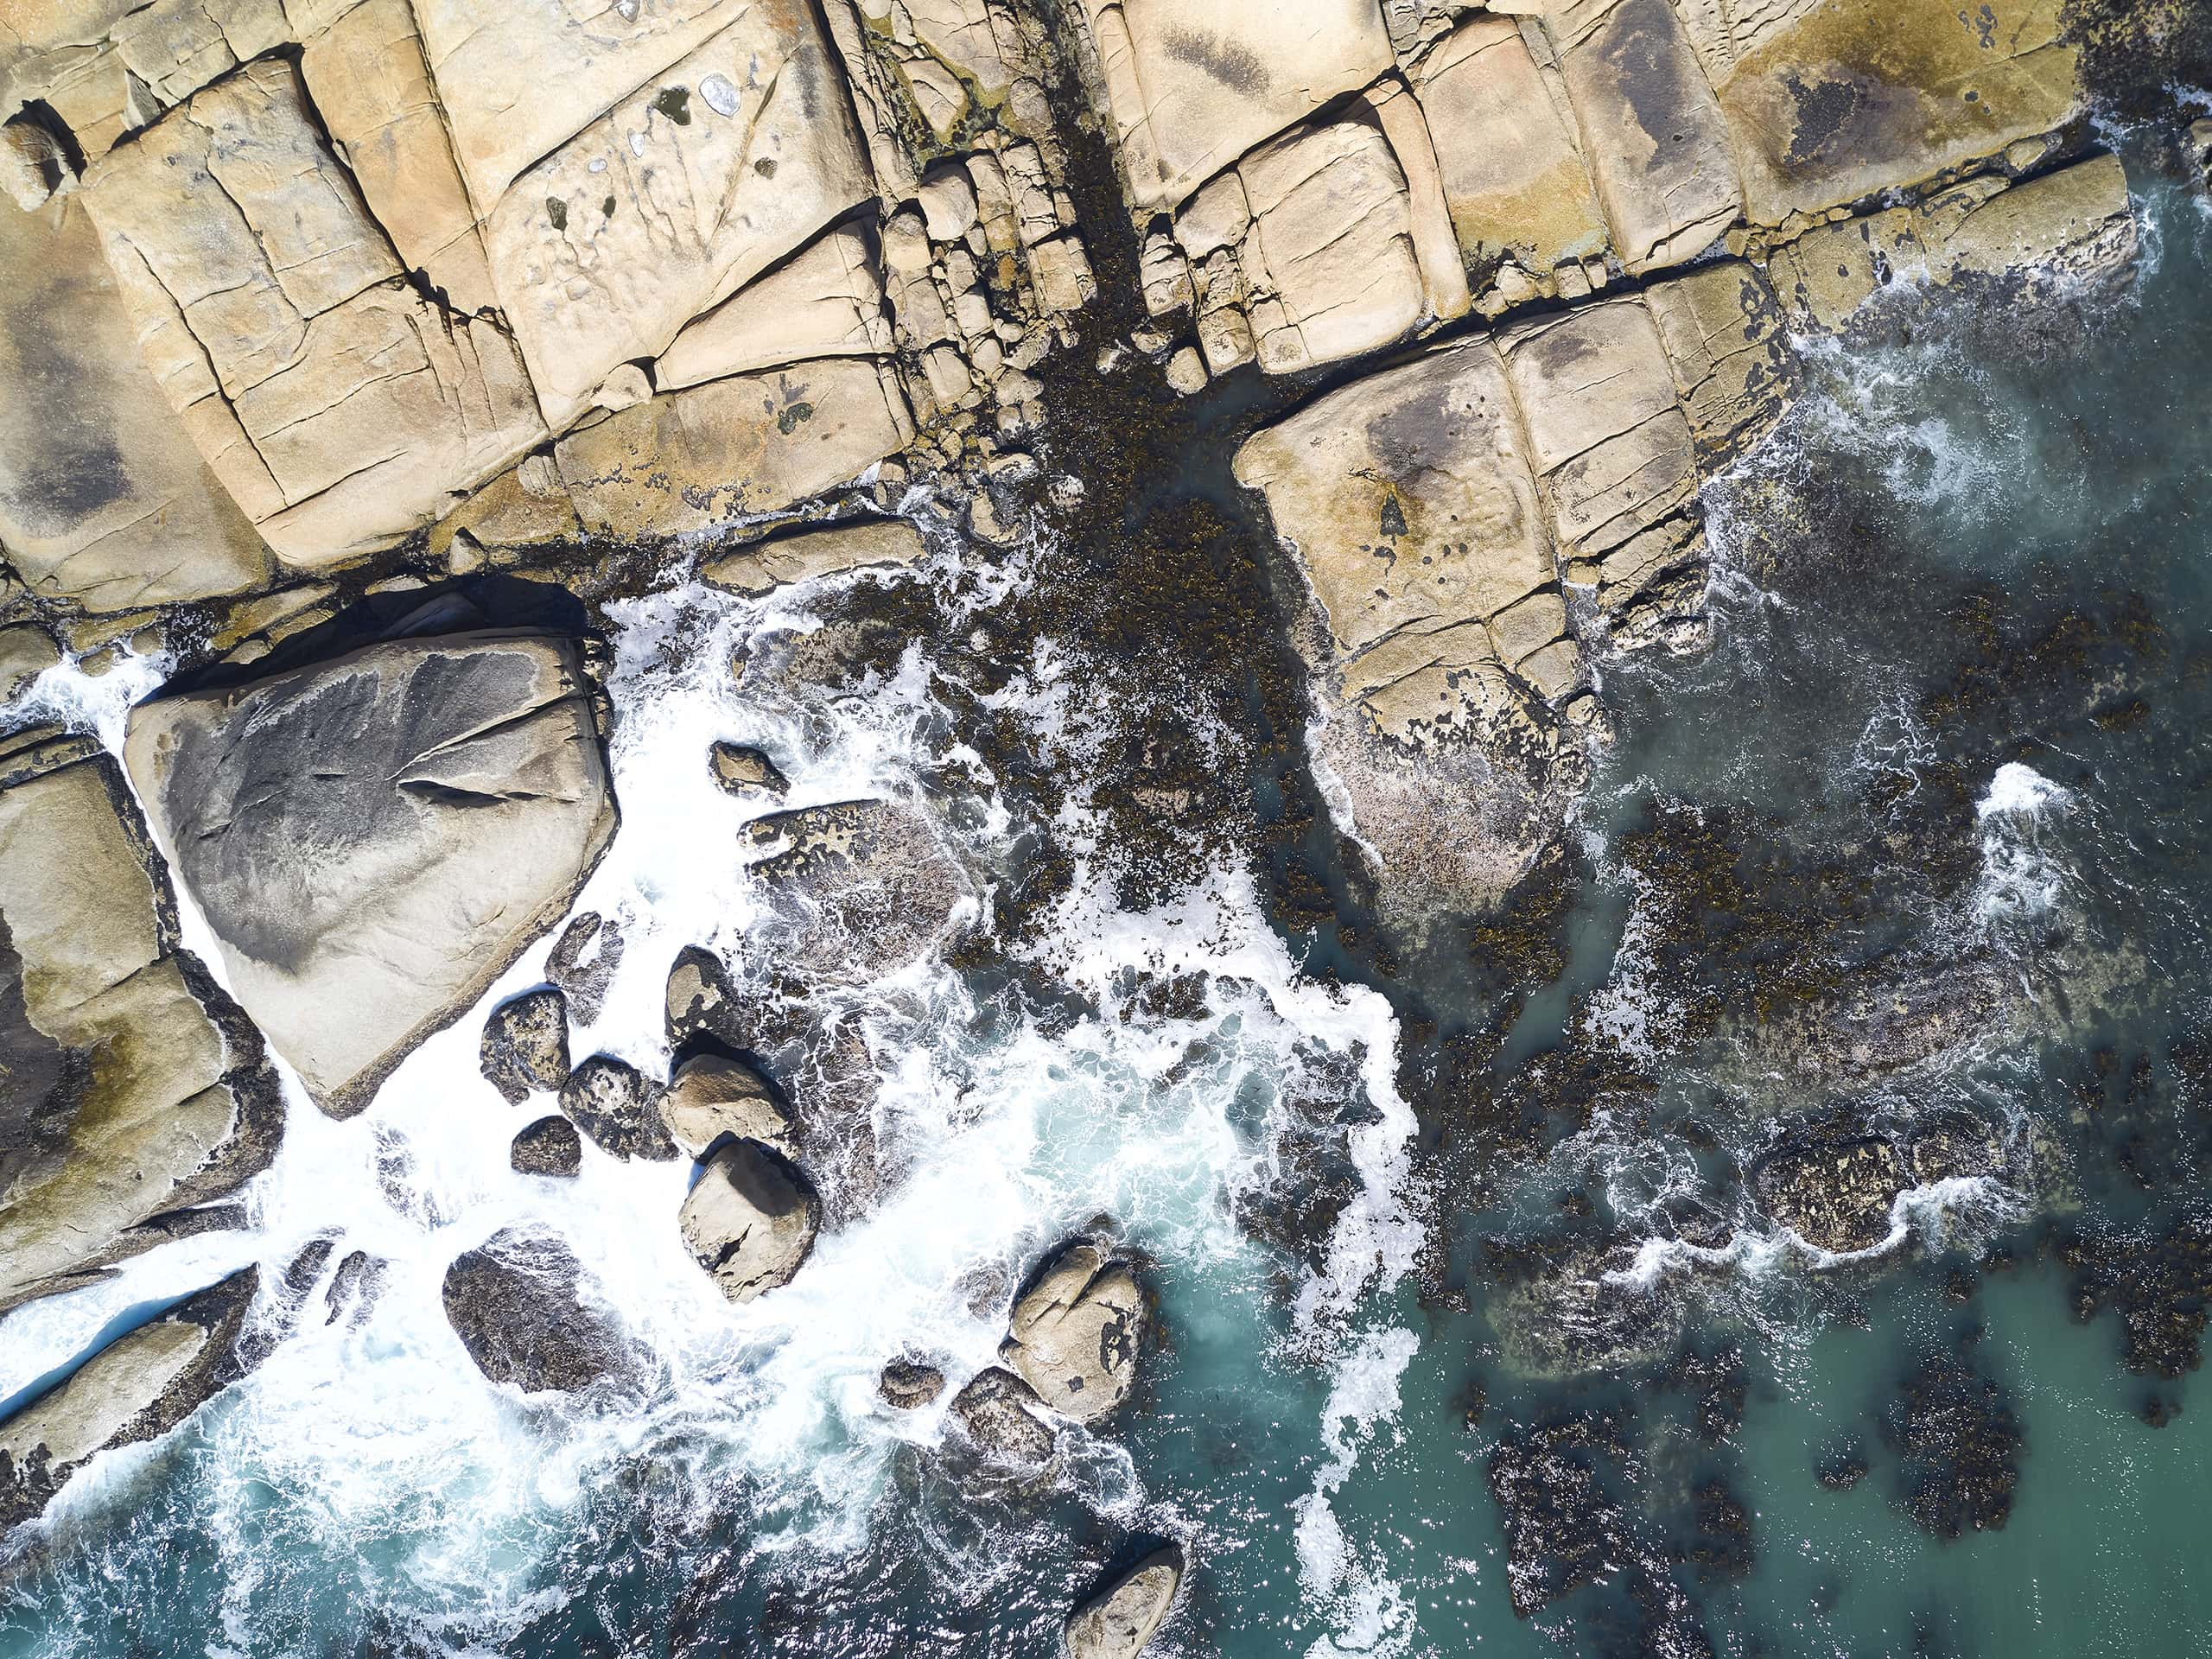 Evocative drone photograph of waves crashing into rocks in the Western Cape, South Africa. Photograph by Elsa Young.